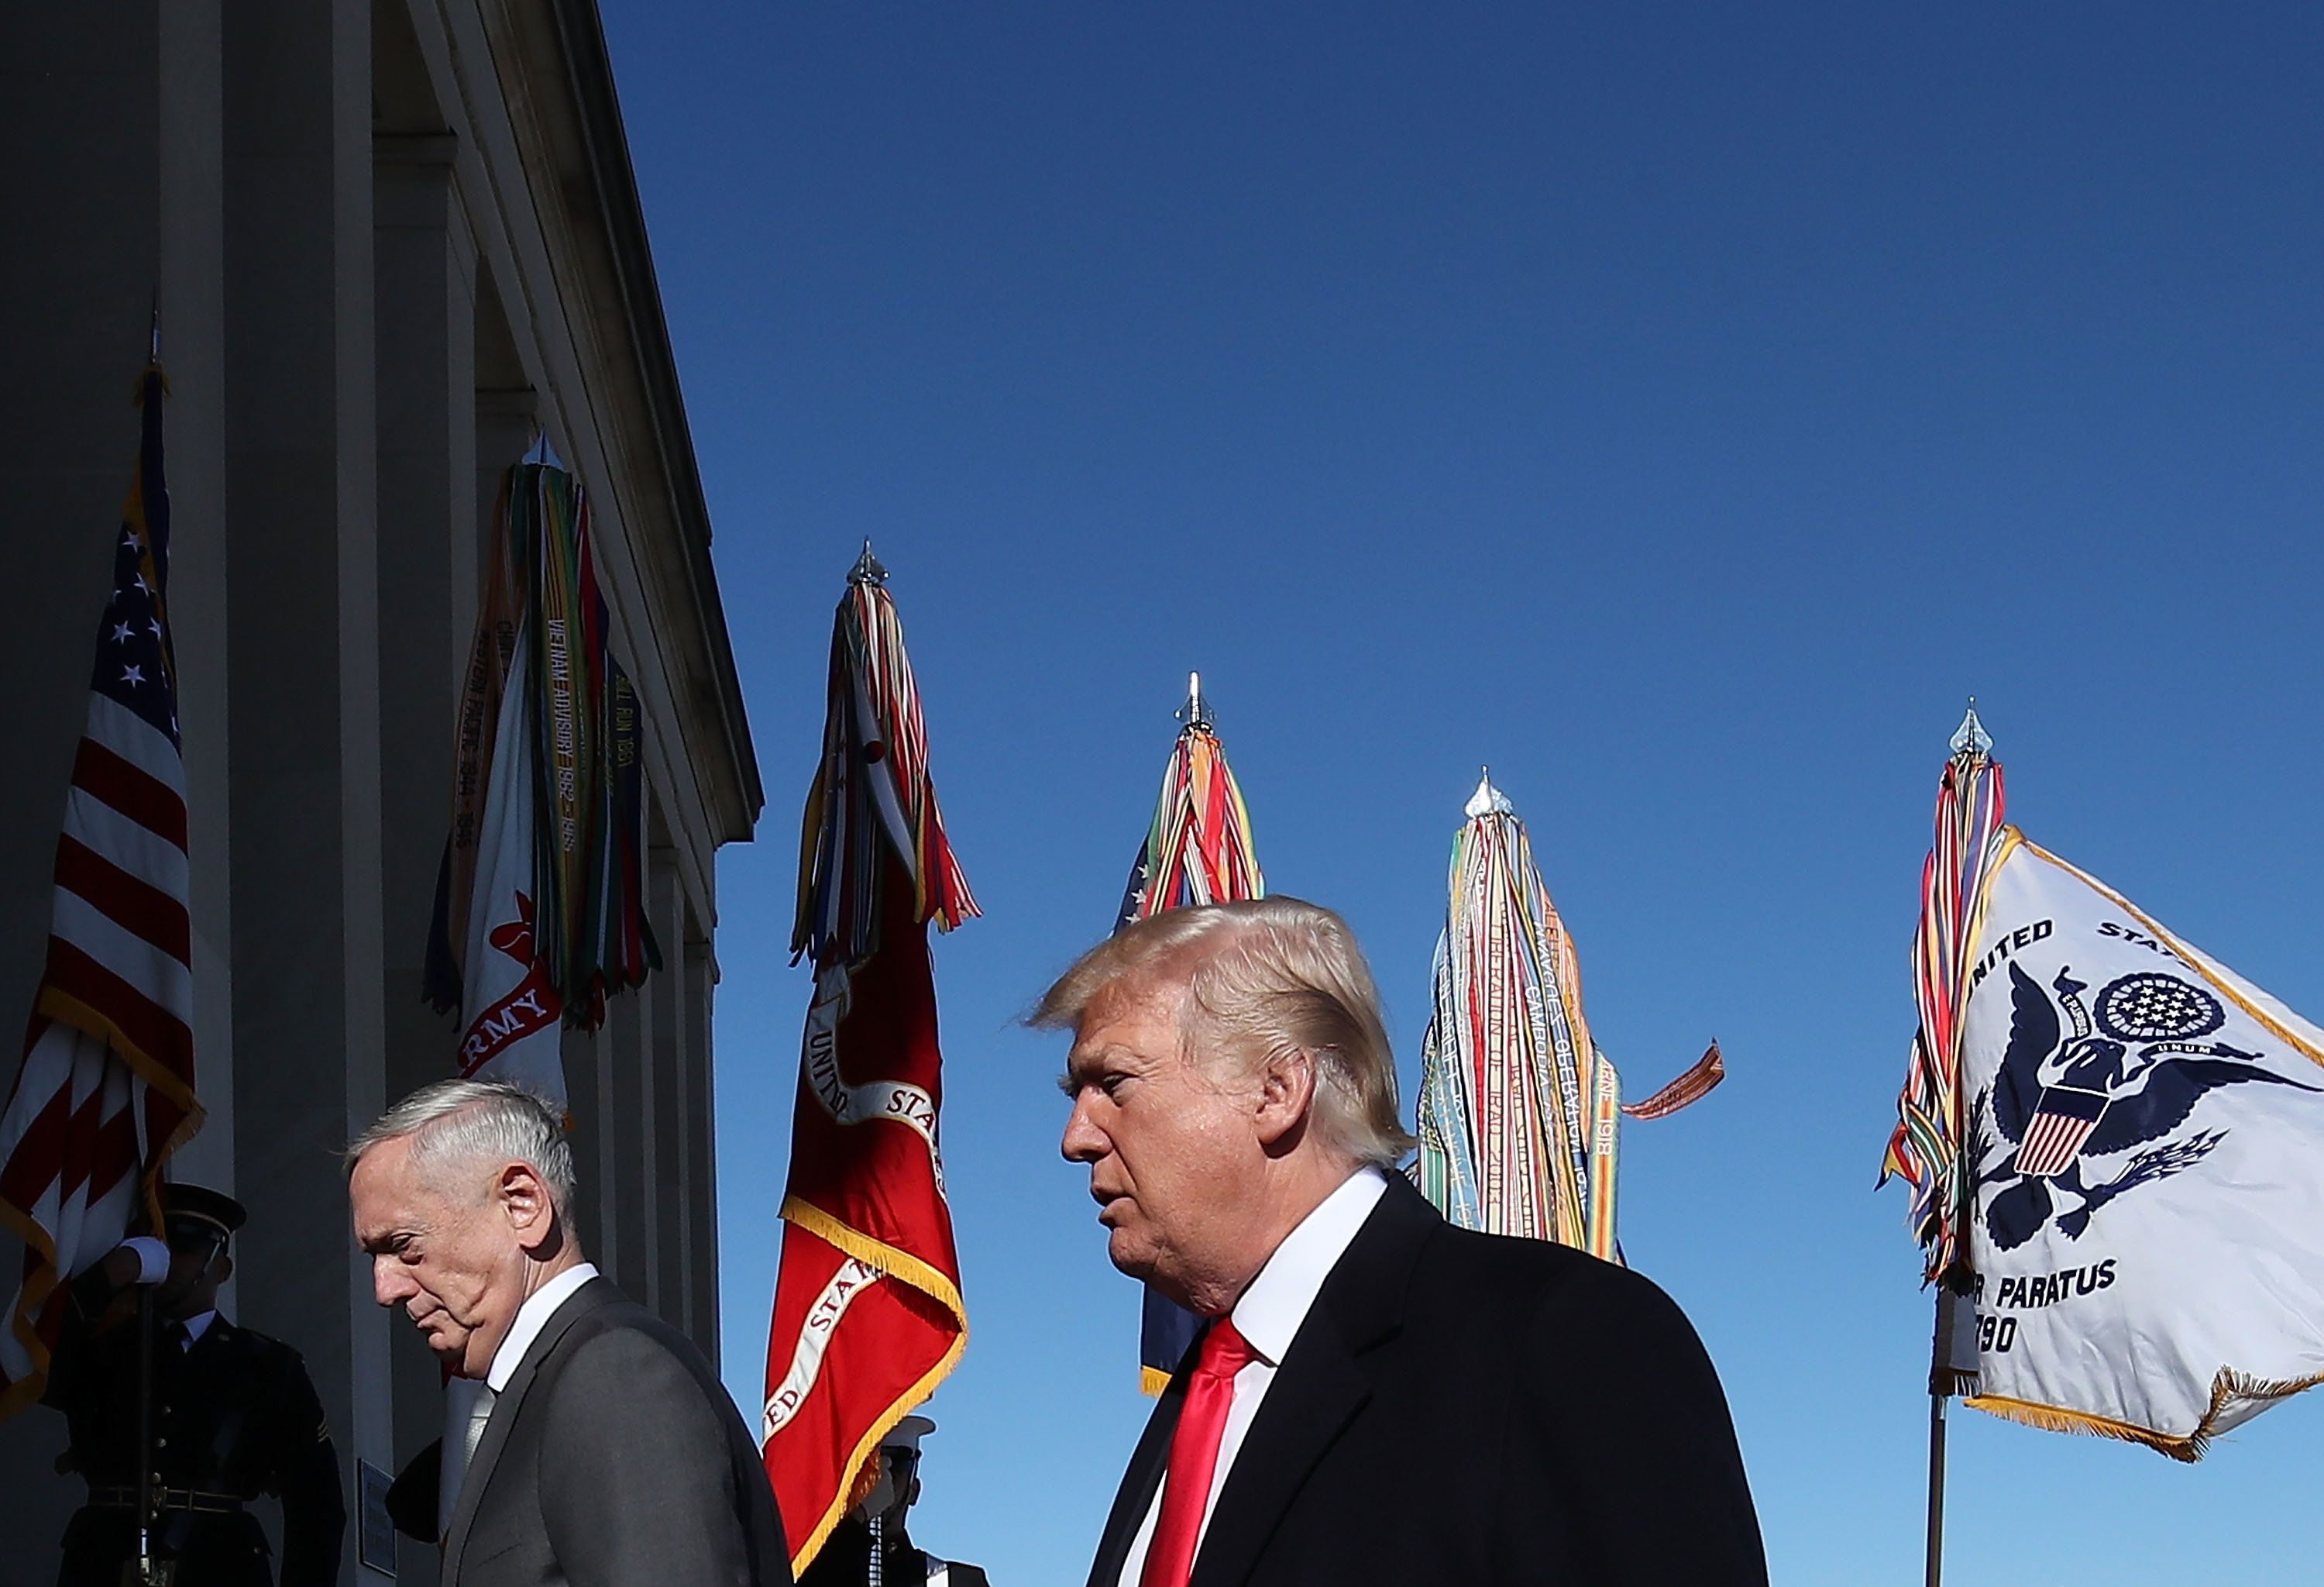 ARLINGTON, VA - JANUARY 18:  U.S. President Donald Trump and Defense Secretary Jim Mattis (L) walk into the Pentagon for a meeting with military leaders on January 18, 2018 in Arlington, Virginia.  (Photo by Mark Wilson/Getty Images)